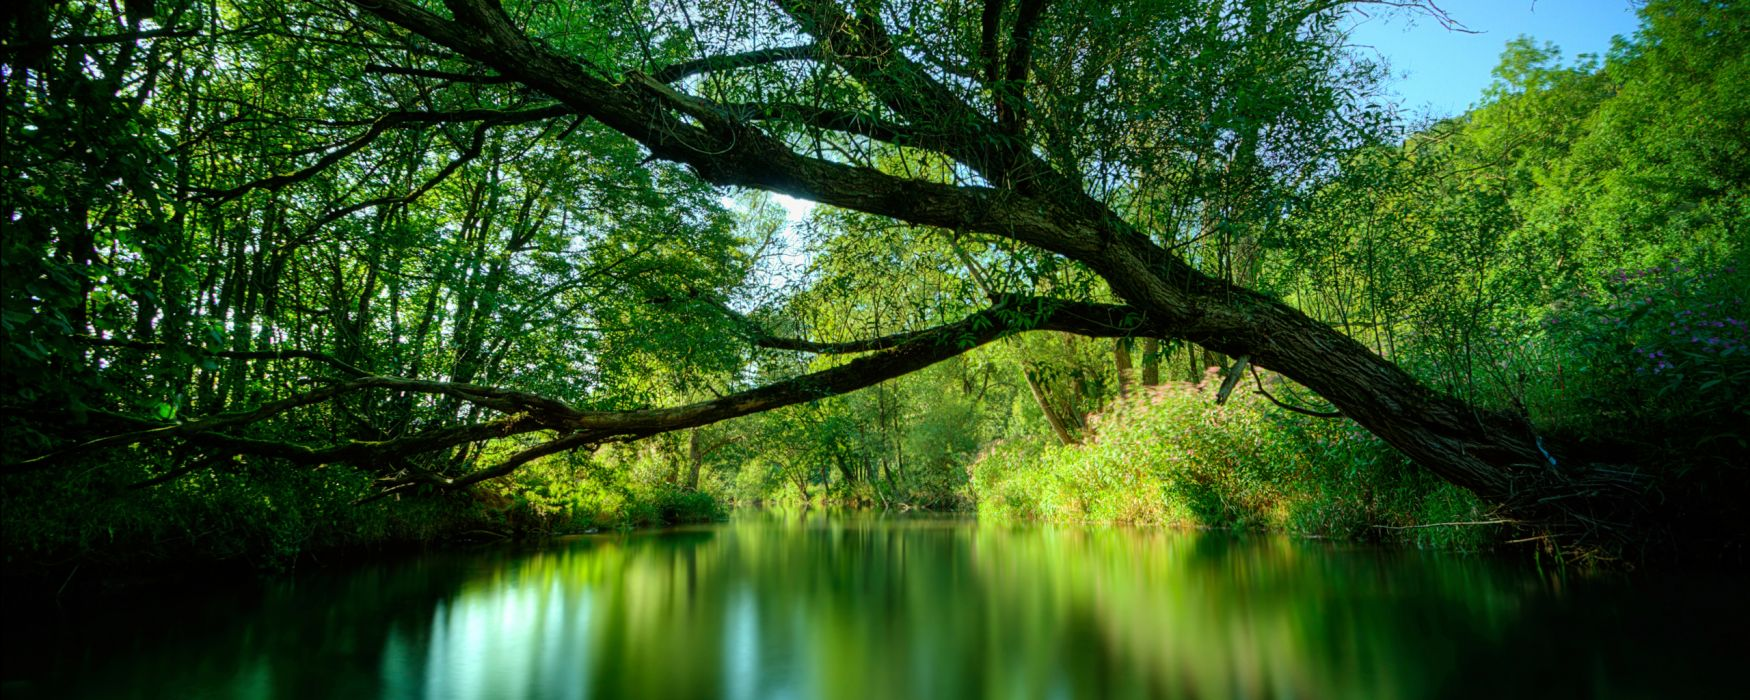 green water nature trees wallpaper